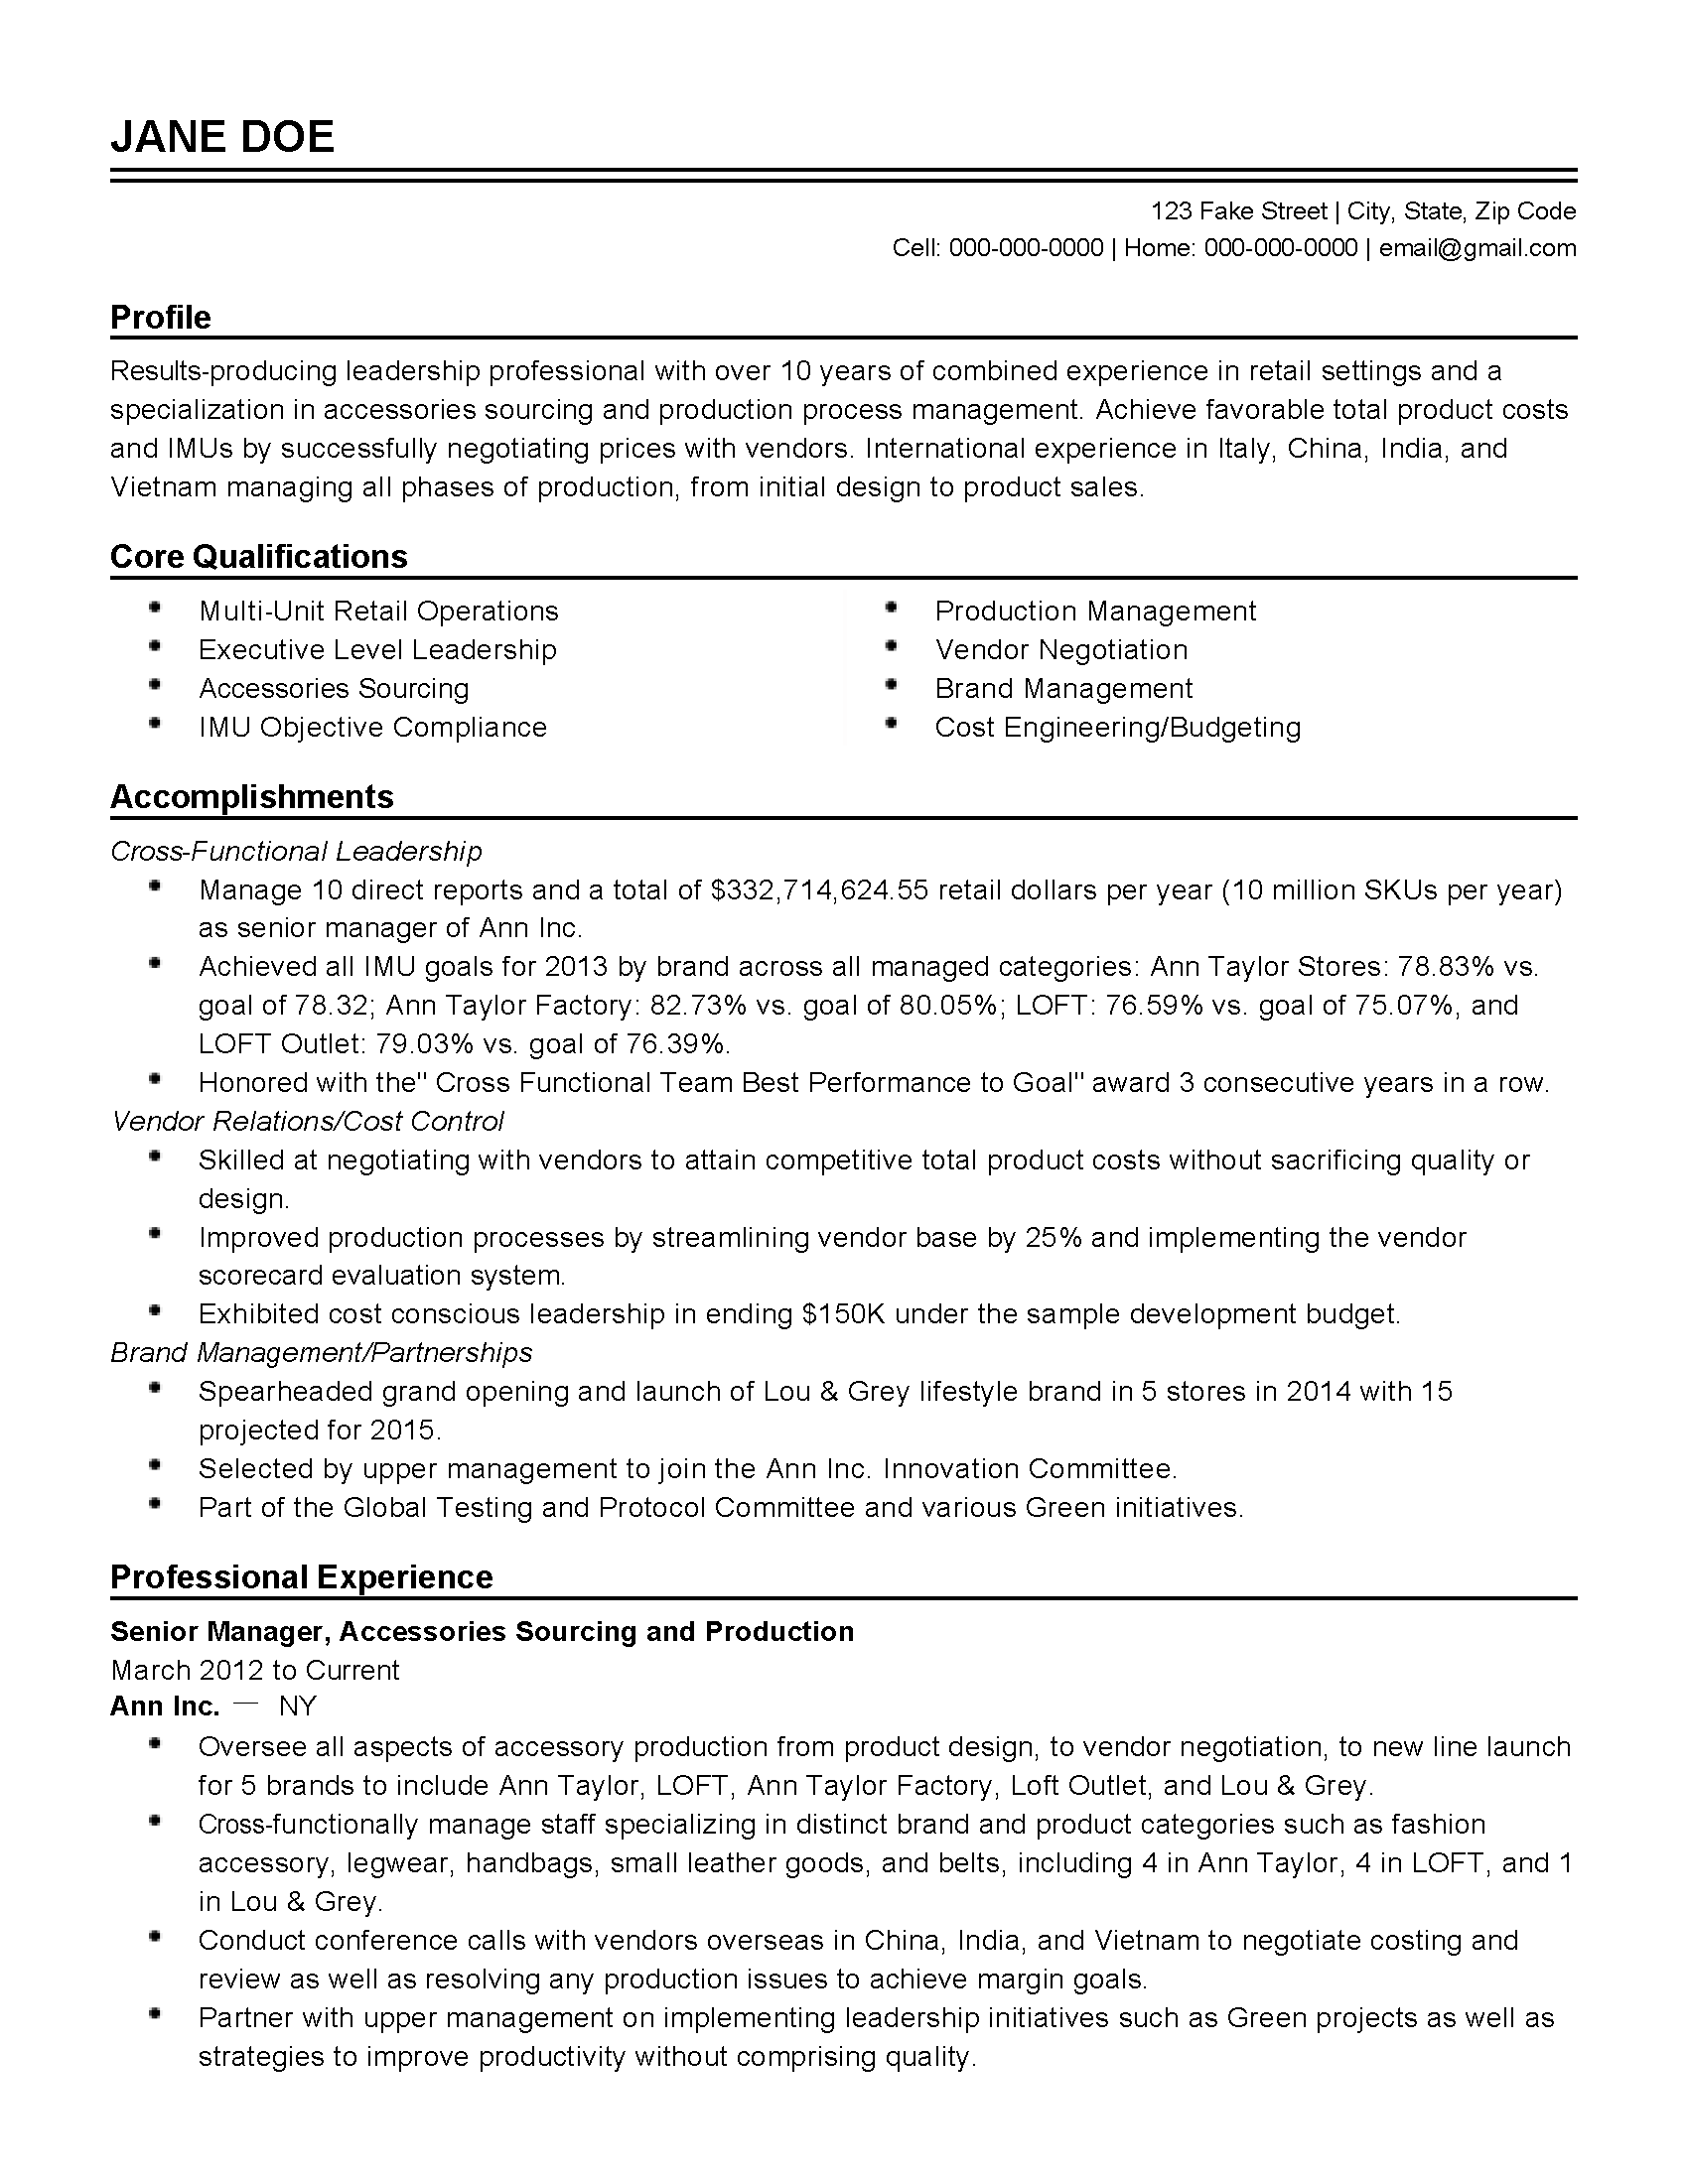 resume examples over 10 years experience    examples  experience  resume  resumeexamples  years